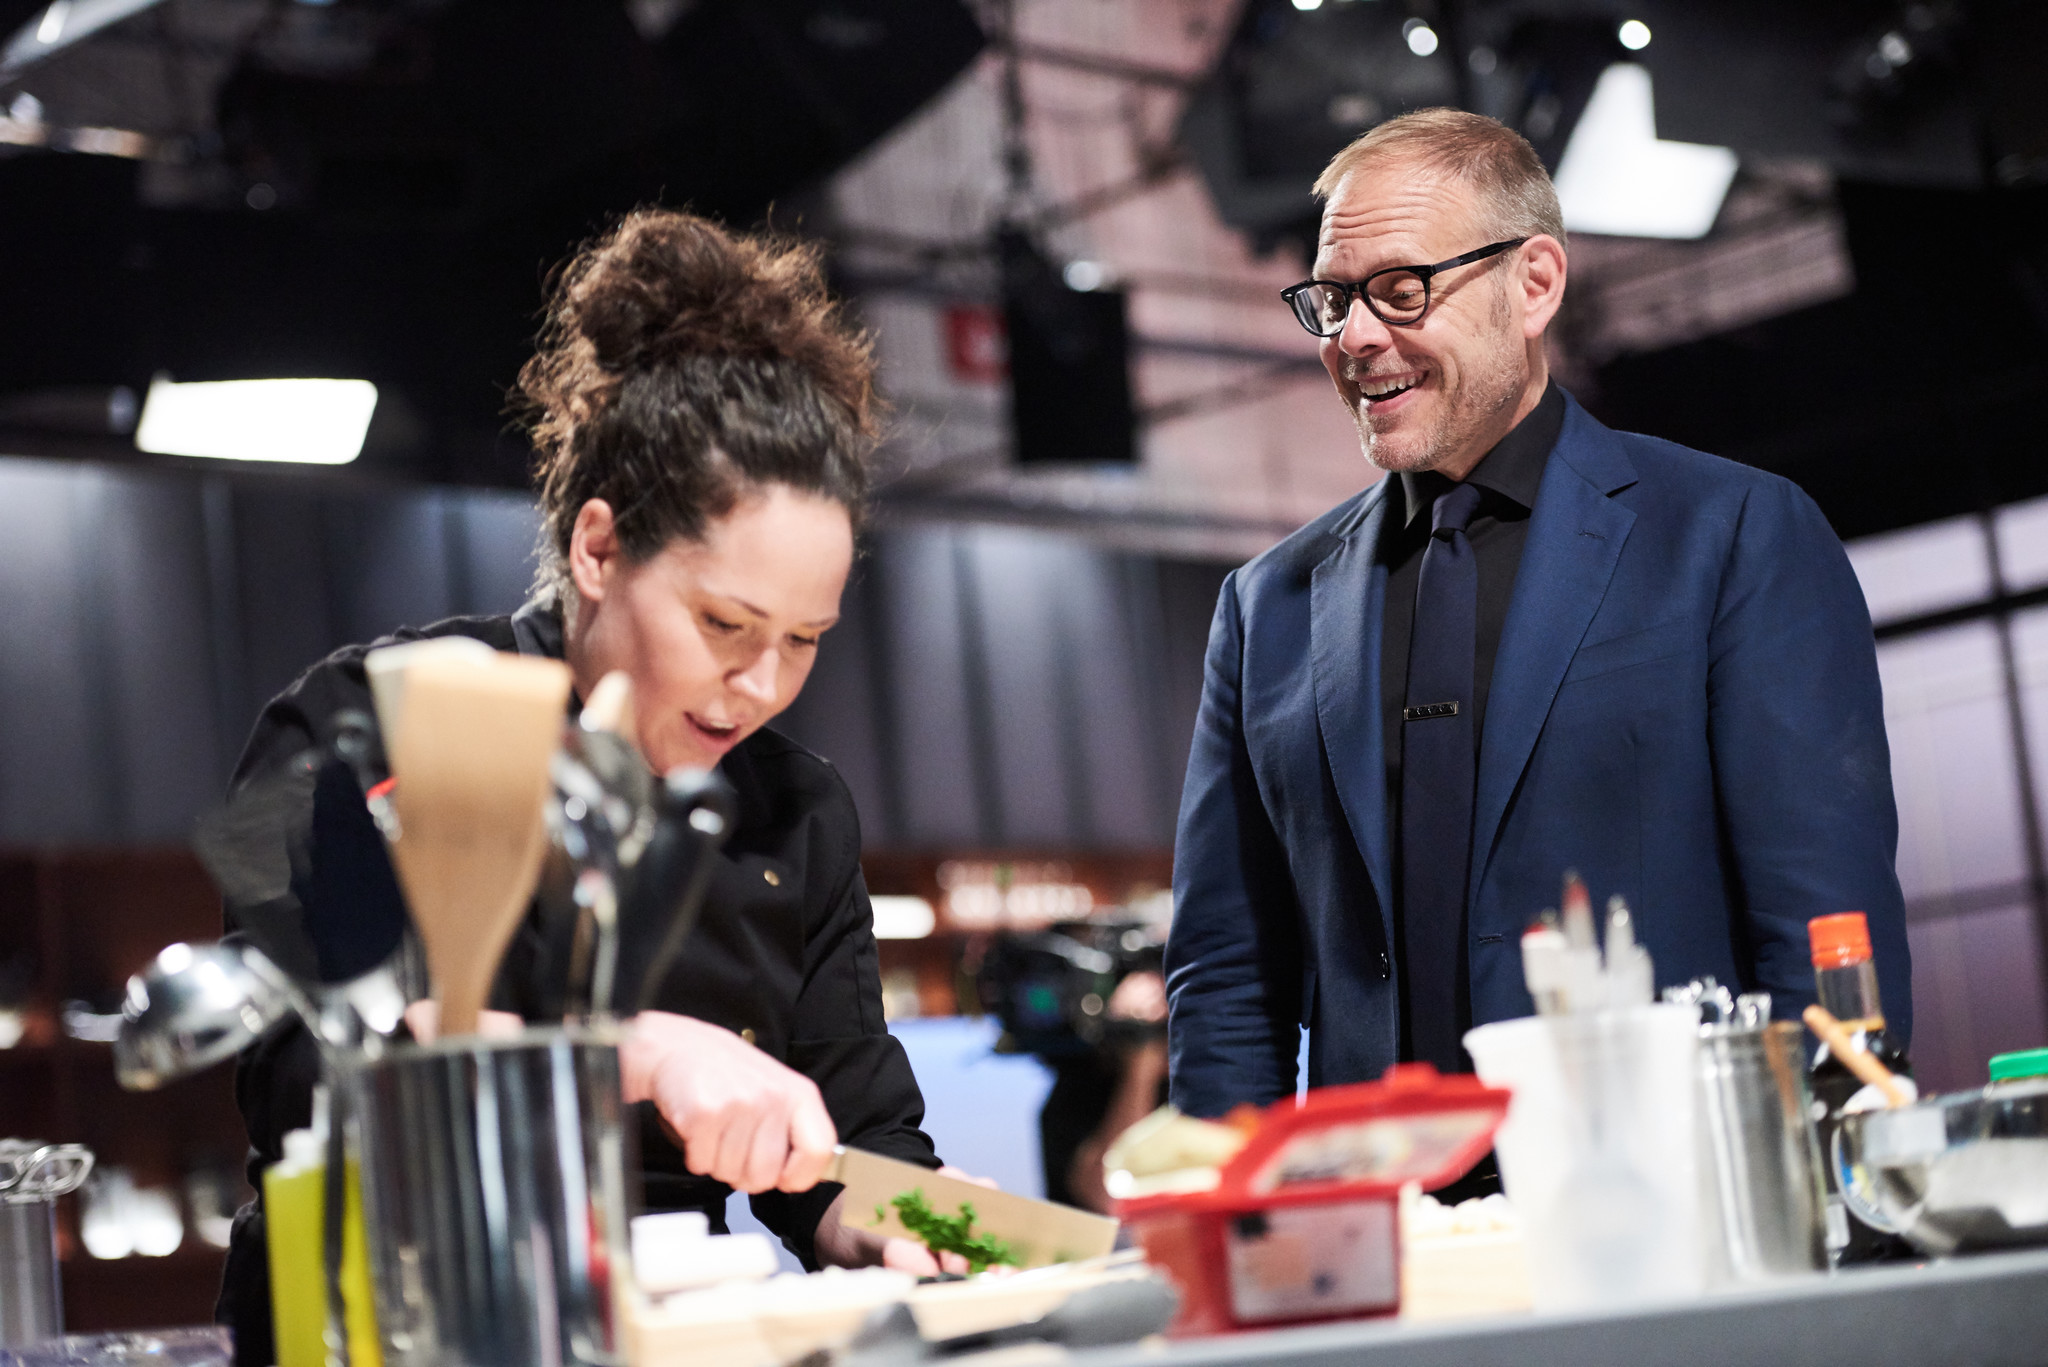 stephanie izard wins 39 iron chef gauntlet 39 becomes an iron chef orlando sentinel. Black Bedroom Furniture Sets. Home Design Ideas